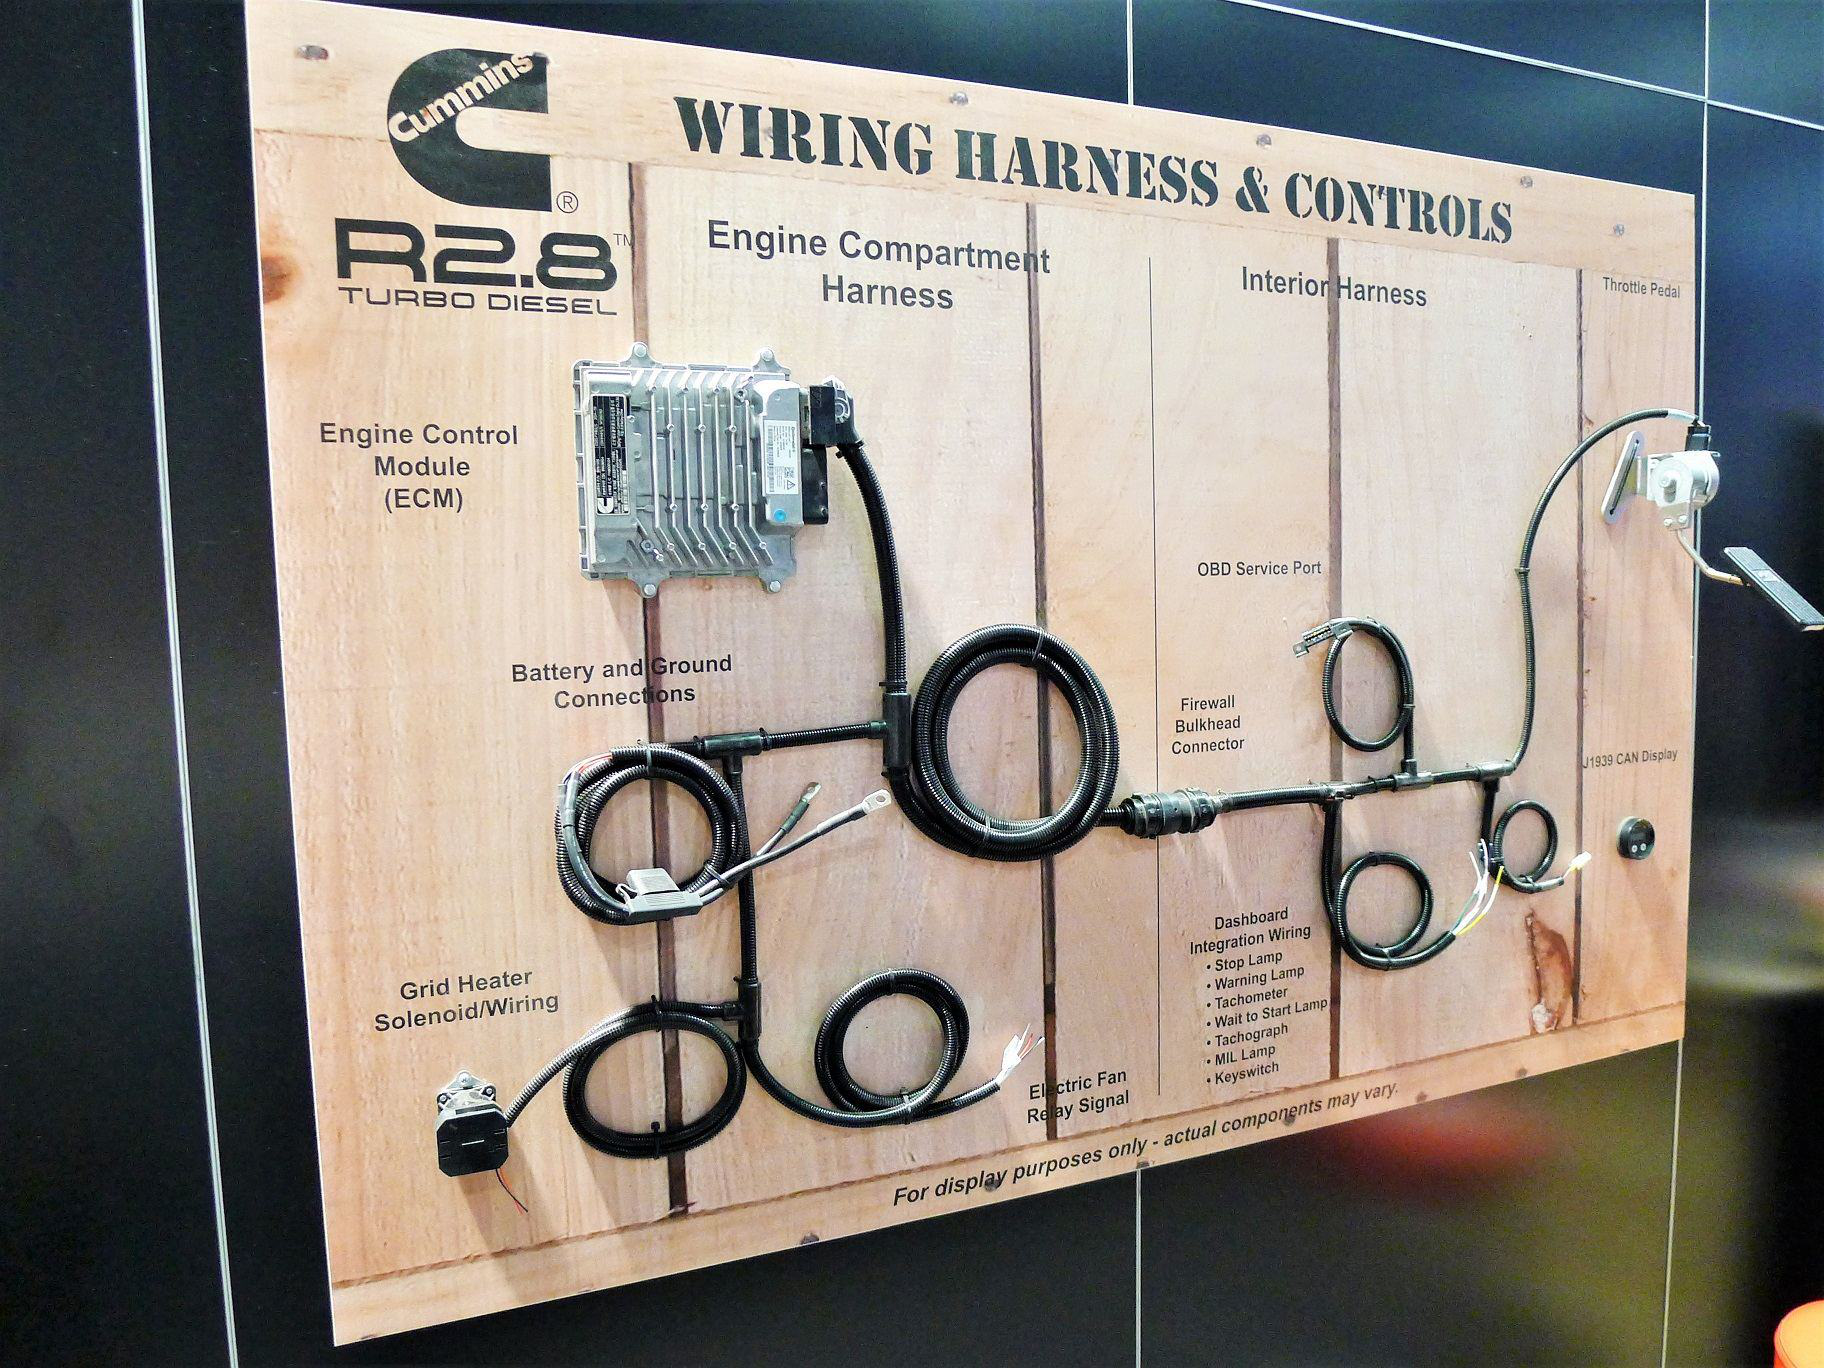 Cummins Unveils Its First Crate Engine The R28 Turbo Diesel Control Module Wiring Harness Connector But Company Is Not Ruling Out Addition Models Including Those With More Advanced Emissions Controls In Future